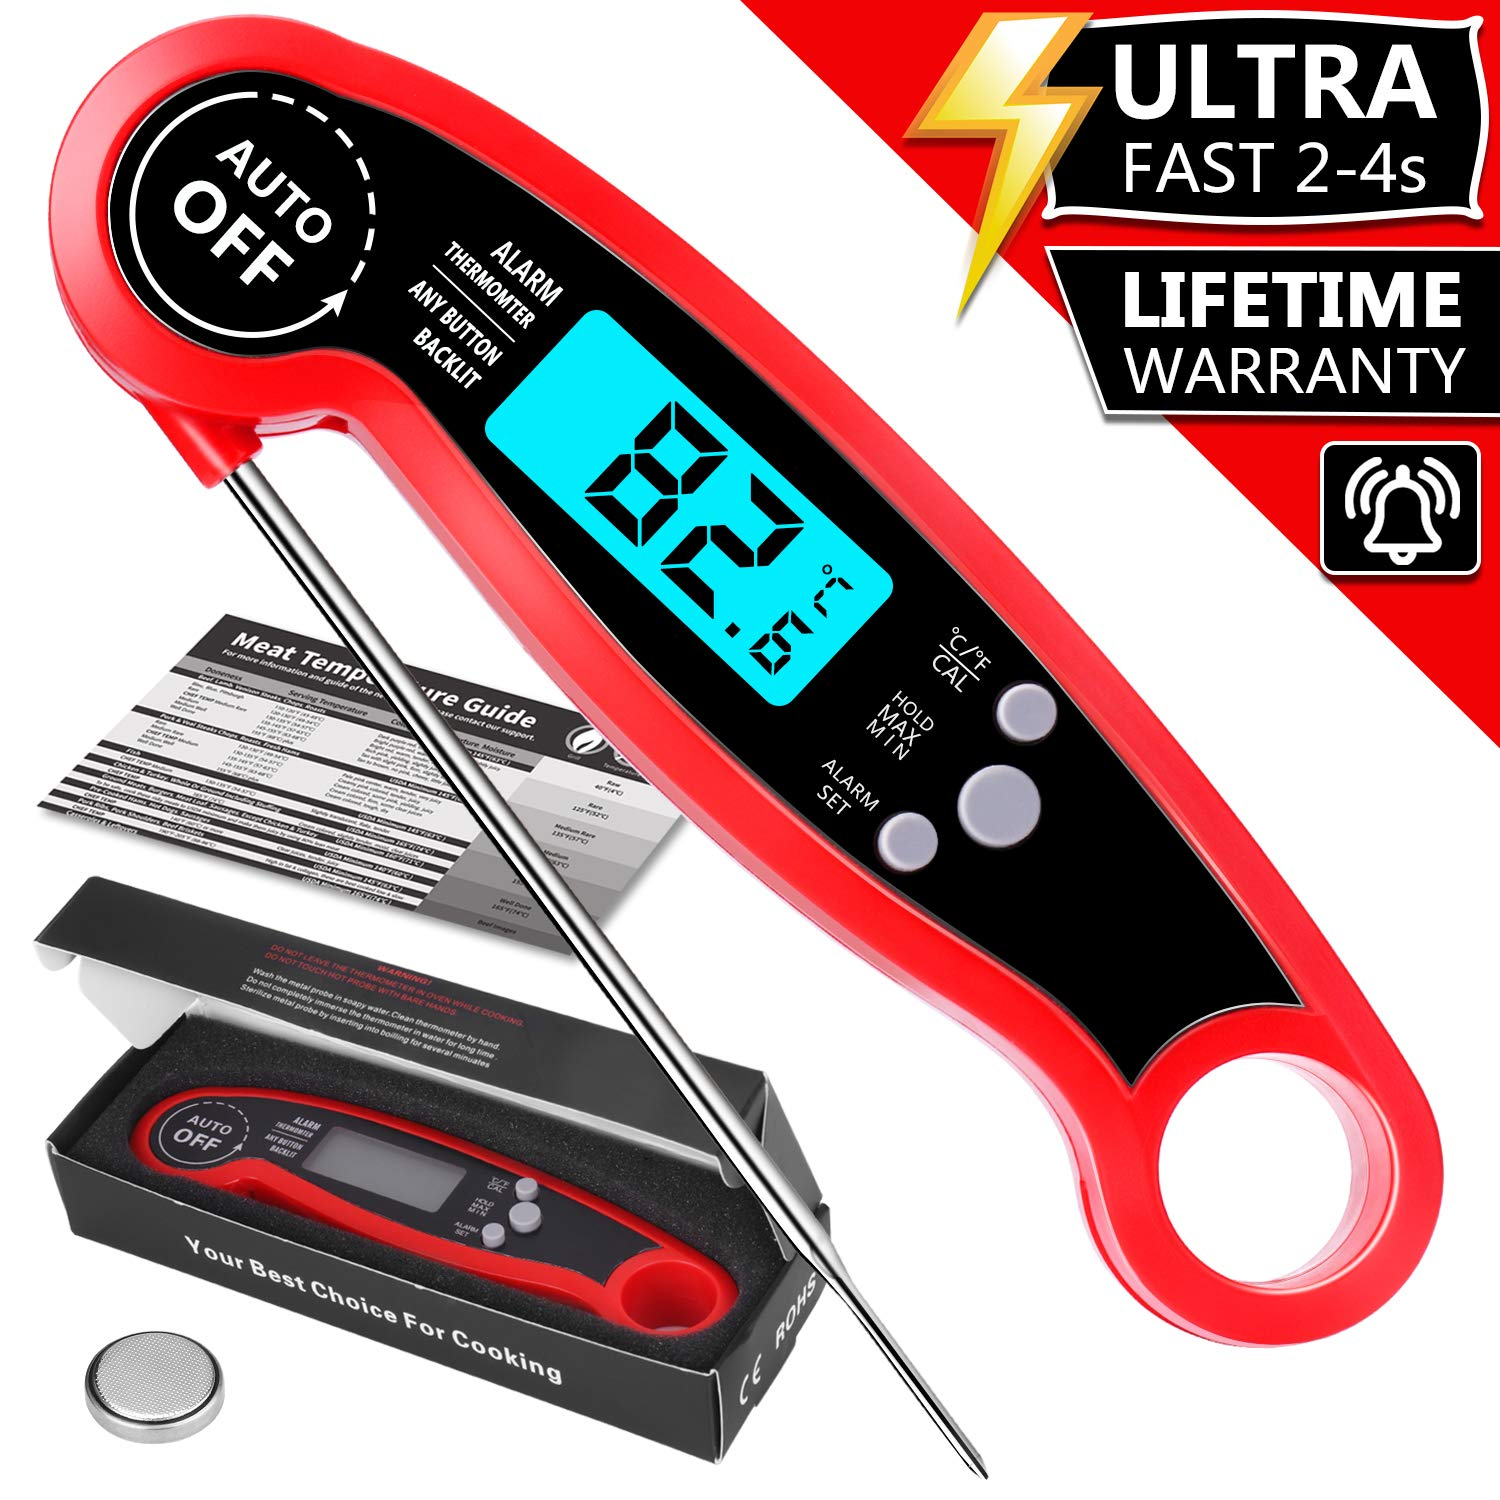 Meat Thermometer Instant Read for Grilling, PEMOTech Waterproof Digital Kitchen Thermometer with Backlight & Calibration, Instant Read Food Thermometer for Grill, Outdoor Cooking, BBQ and Kitchen.